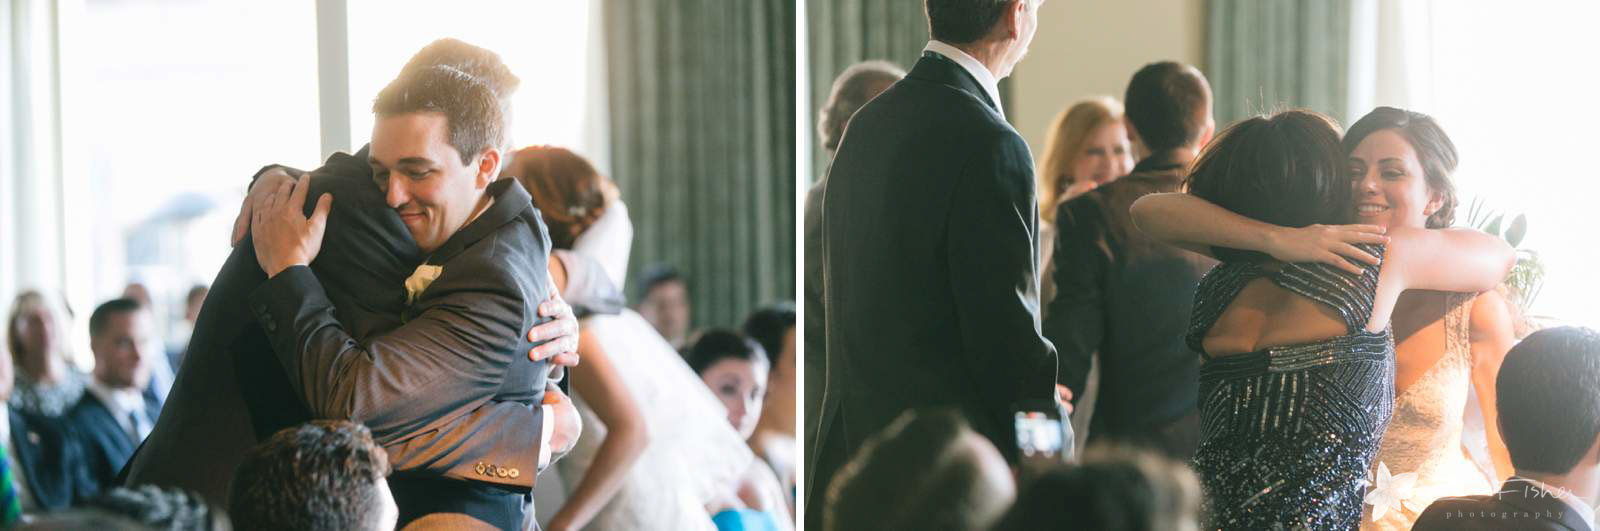 Bride and groom hug their parents during the wedding ceremony.